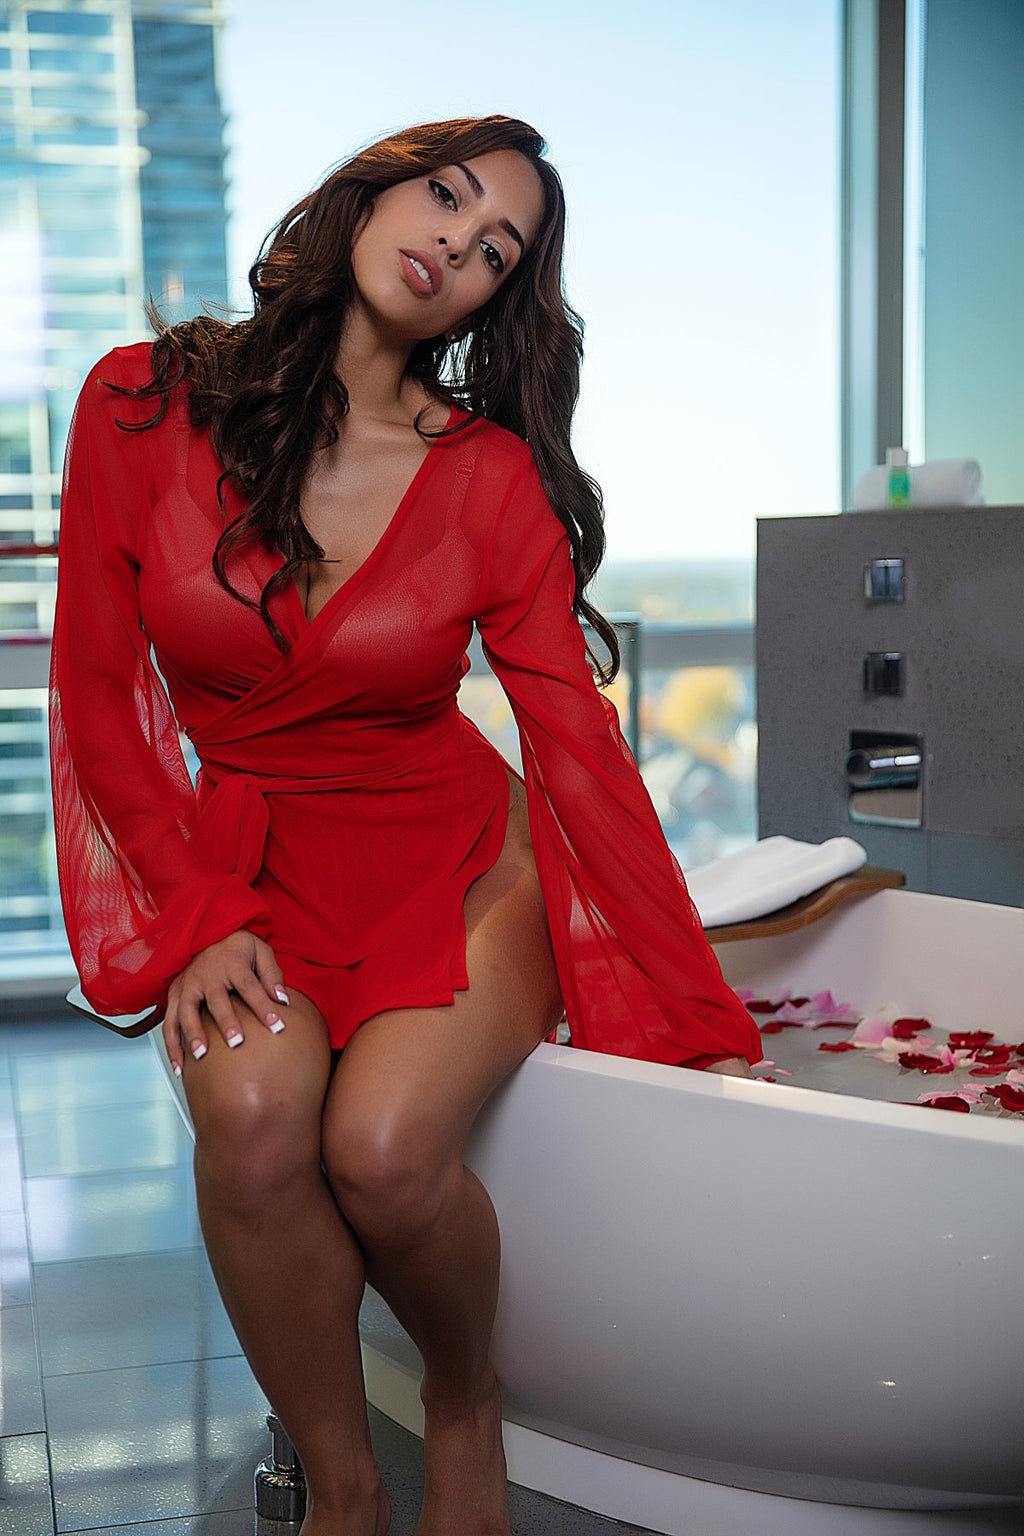 beautiful girl in red lingerie robe in modern urban bathroom